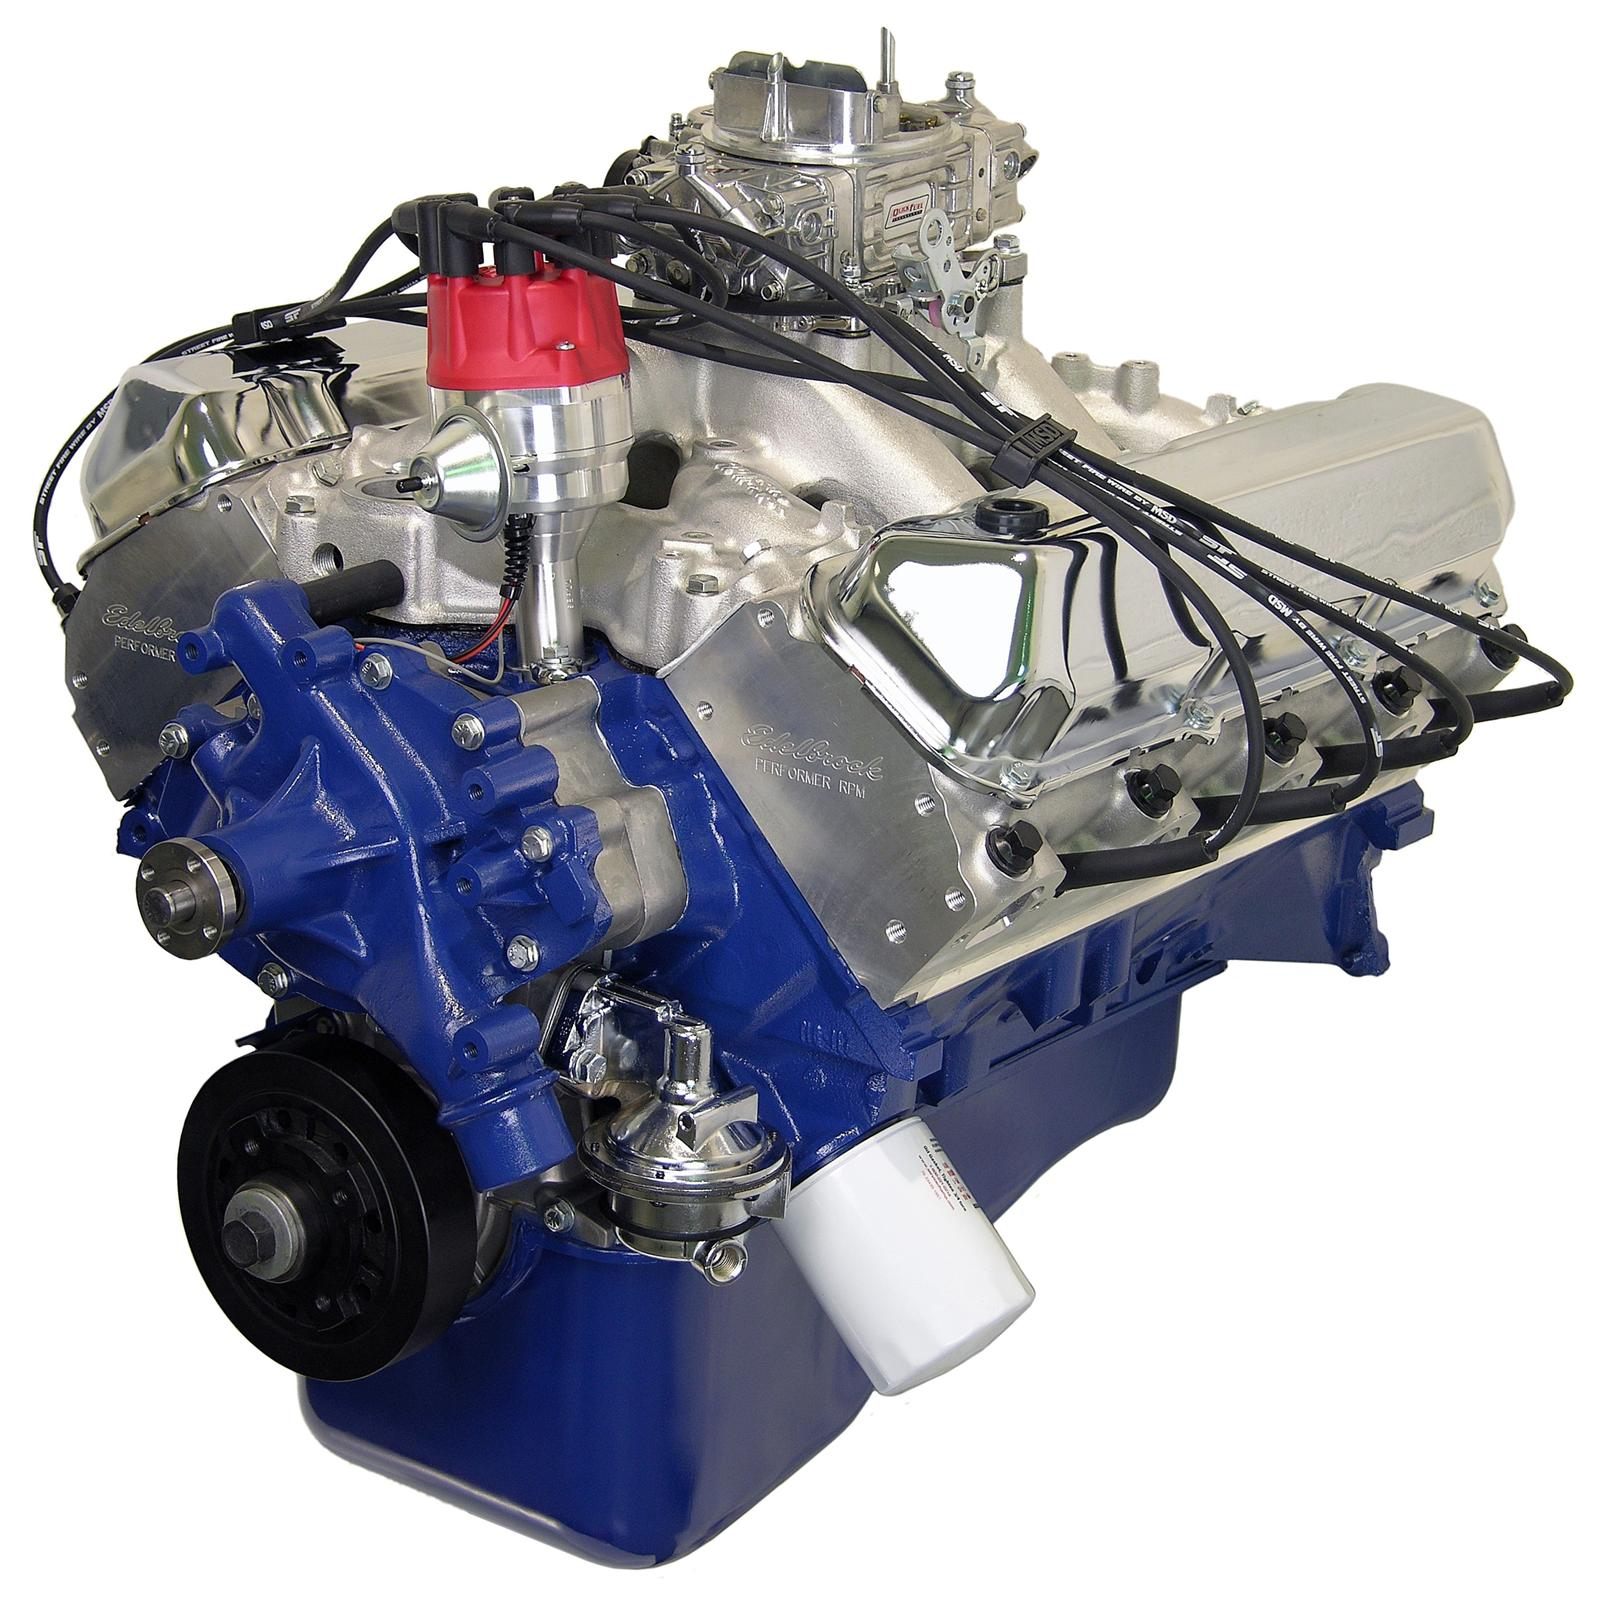 hpe hp19m_xl atk high performance ford 460 525hp stage 1 crate engines hp19  at crackthecode.co